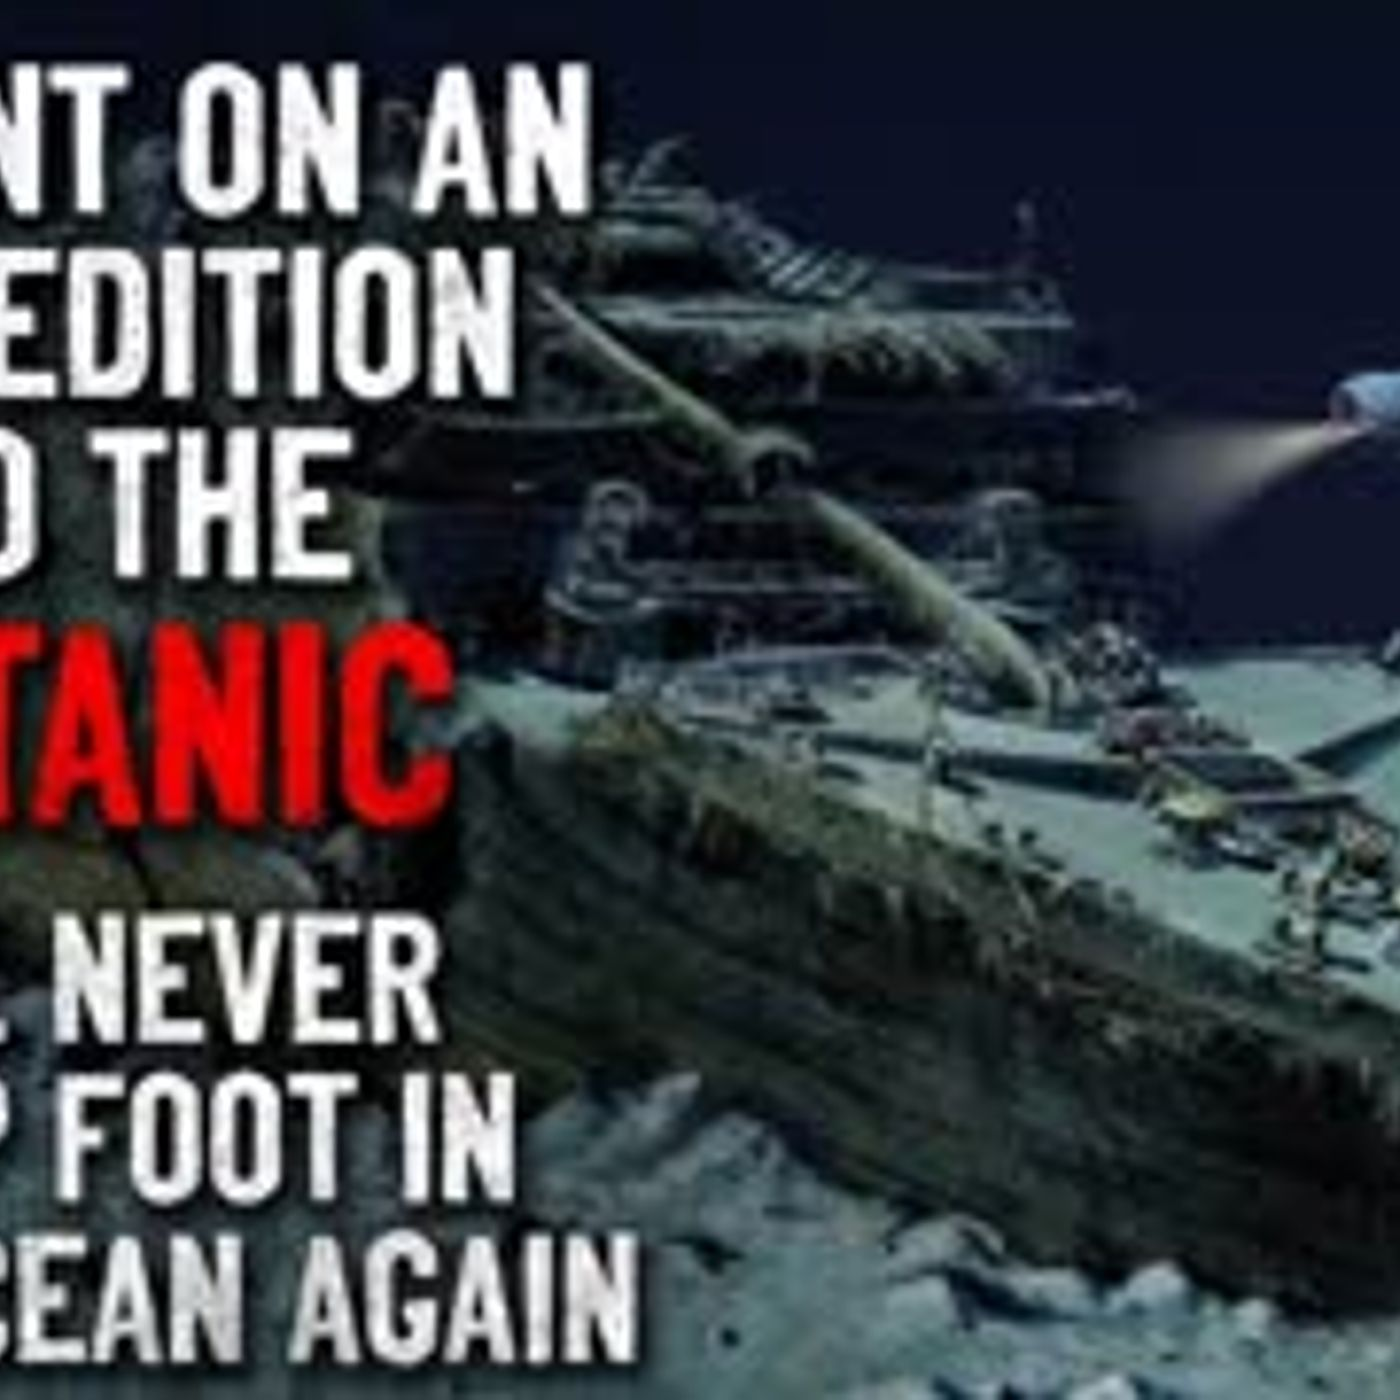 """I Went On An Expedition To The Titanic. I'll Never Set Foot In The Ocean Again"" Creepypasta"